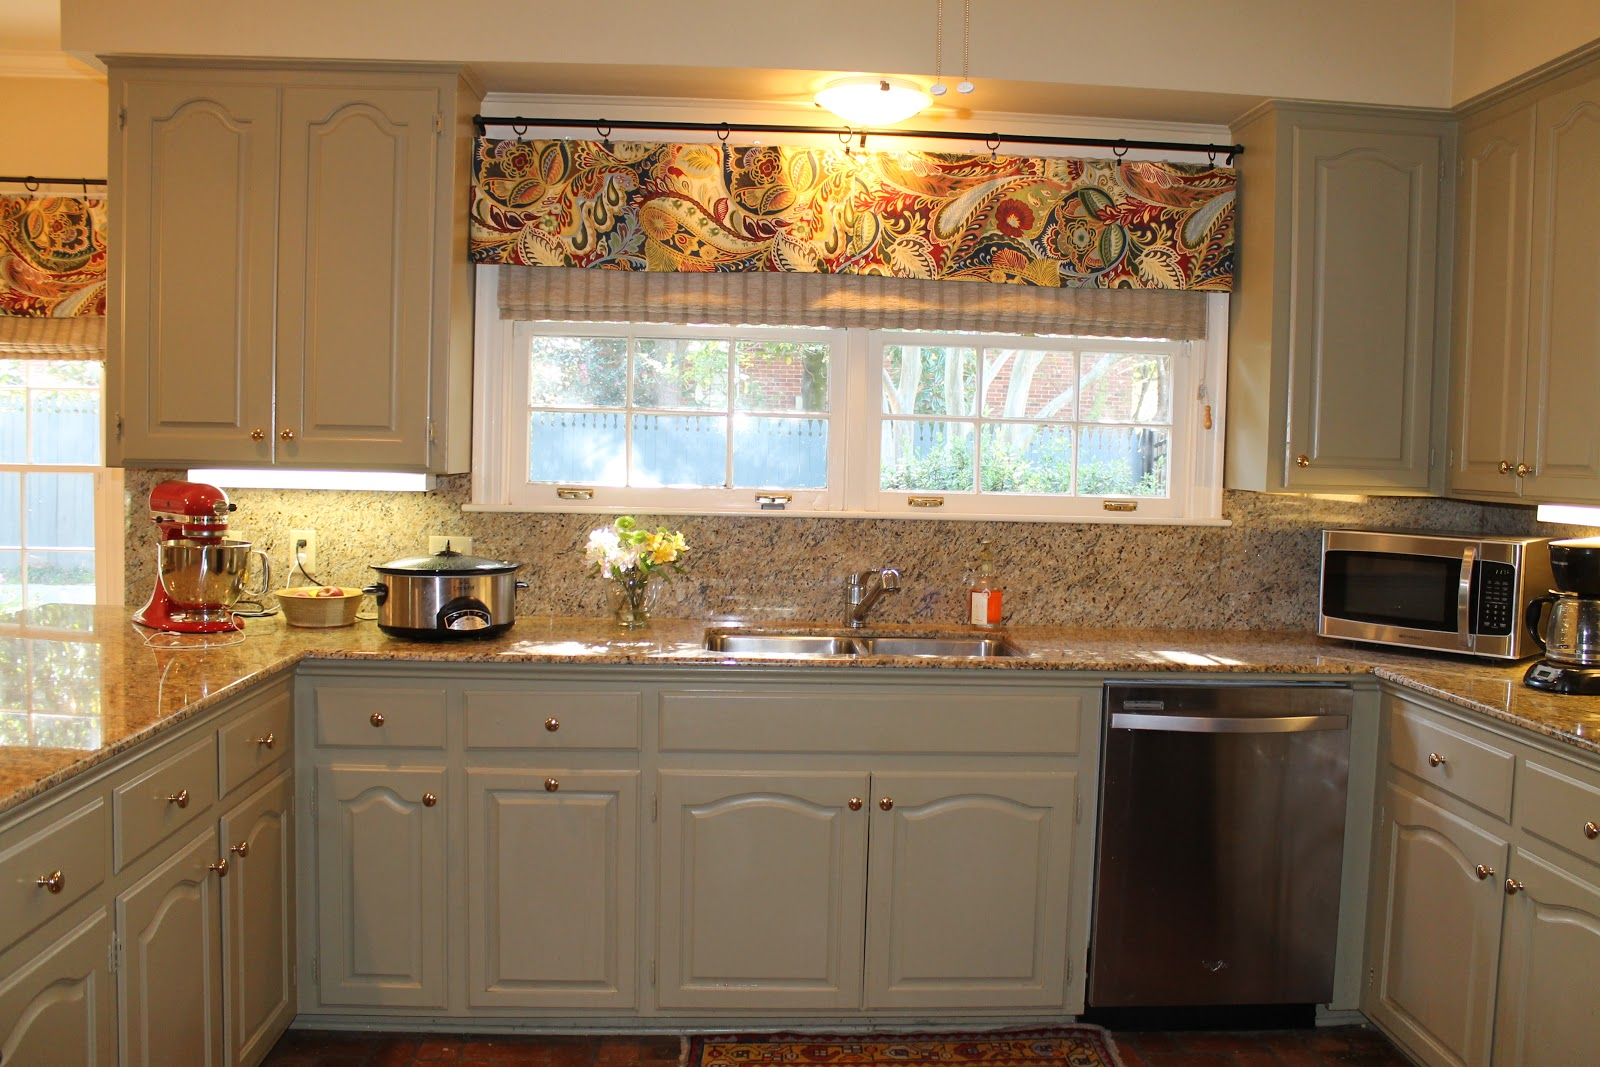 Seamingly Smitten How to Sew a Kitchen Valance  mini